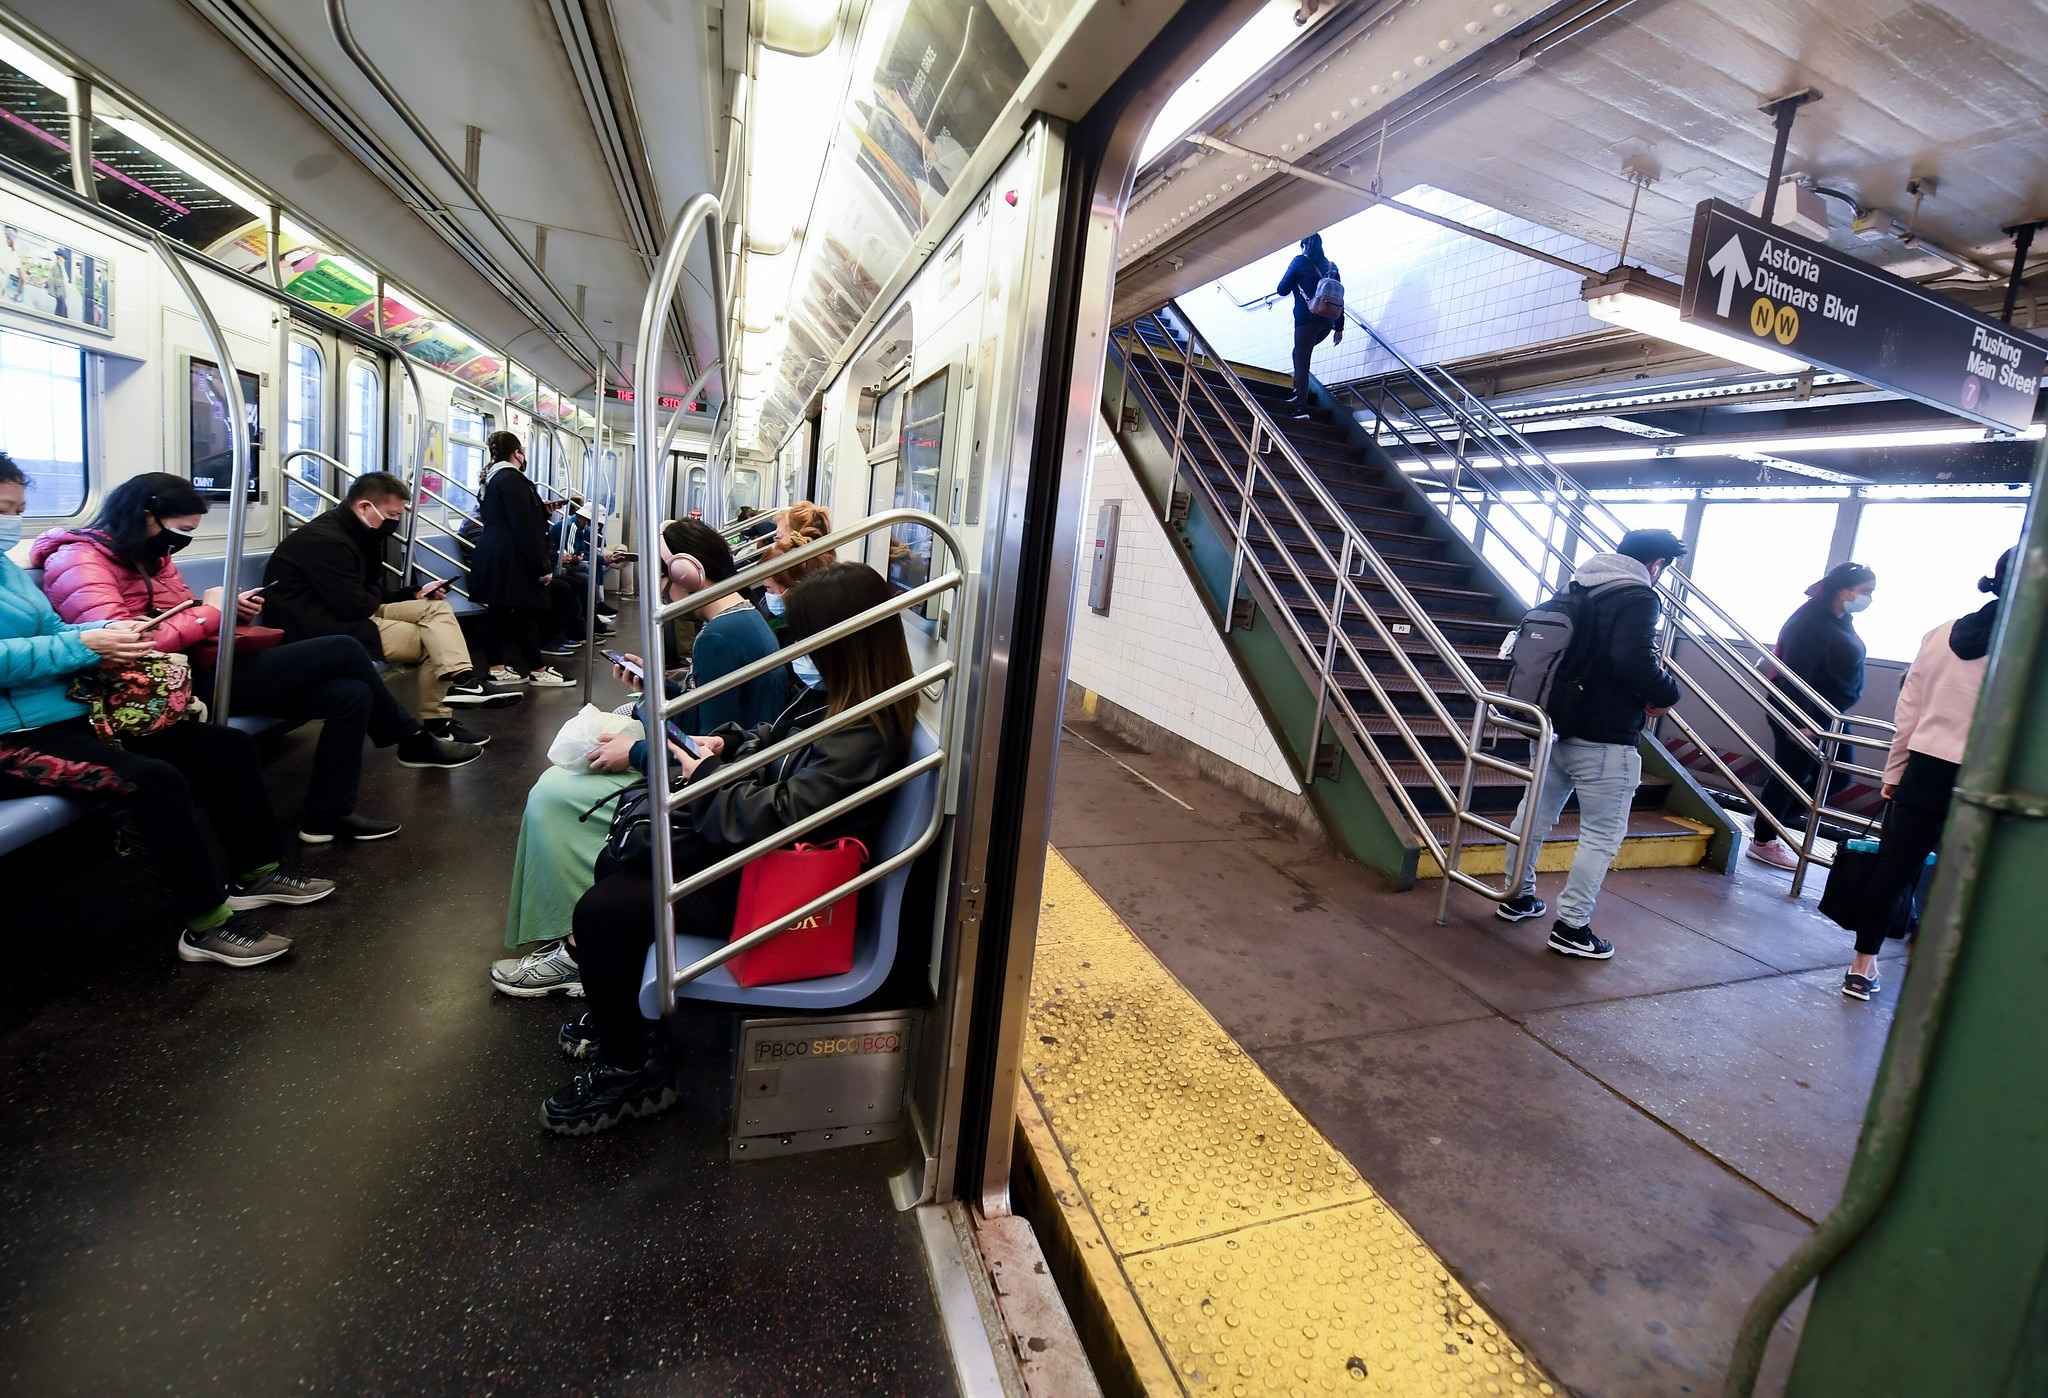 Daily Subway Ridership Tops Two Million for First Time Since Beginning of COVID-19 Pandemic